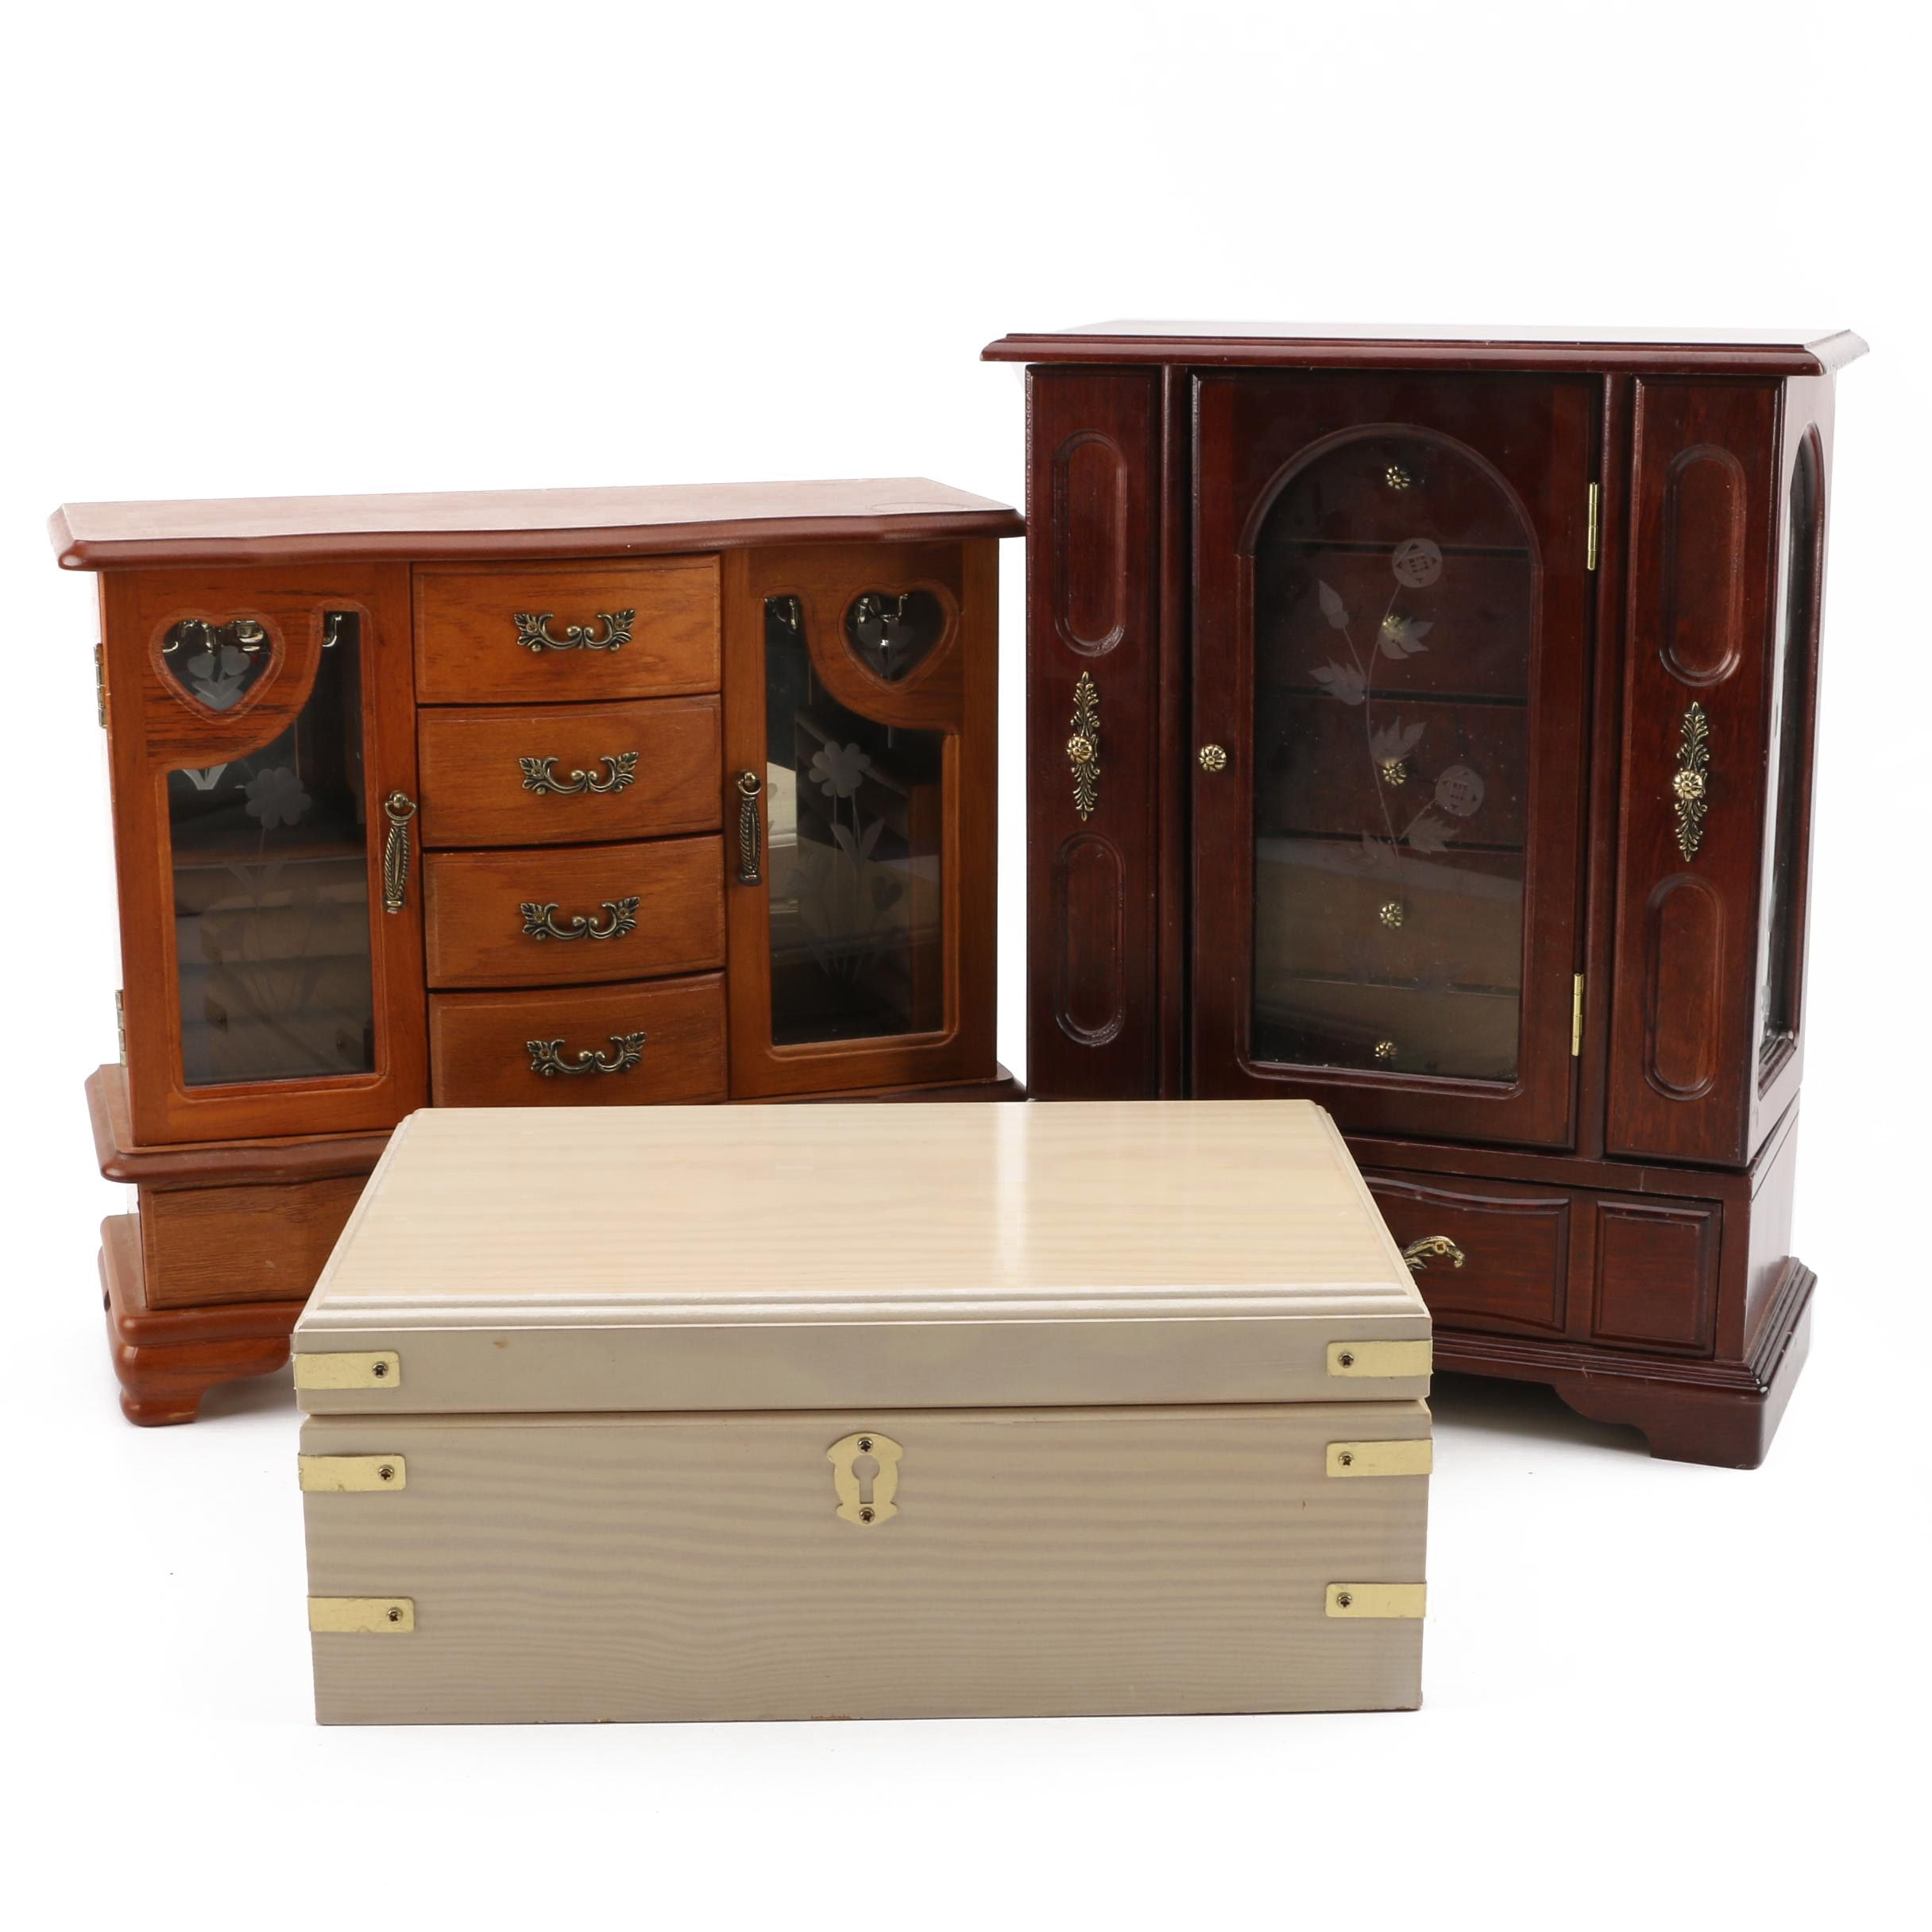 Group of Jewelry Boxes